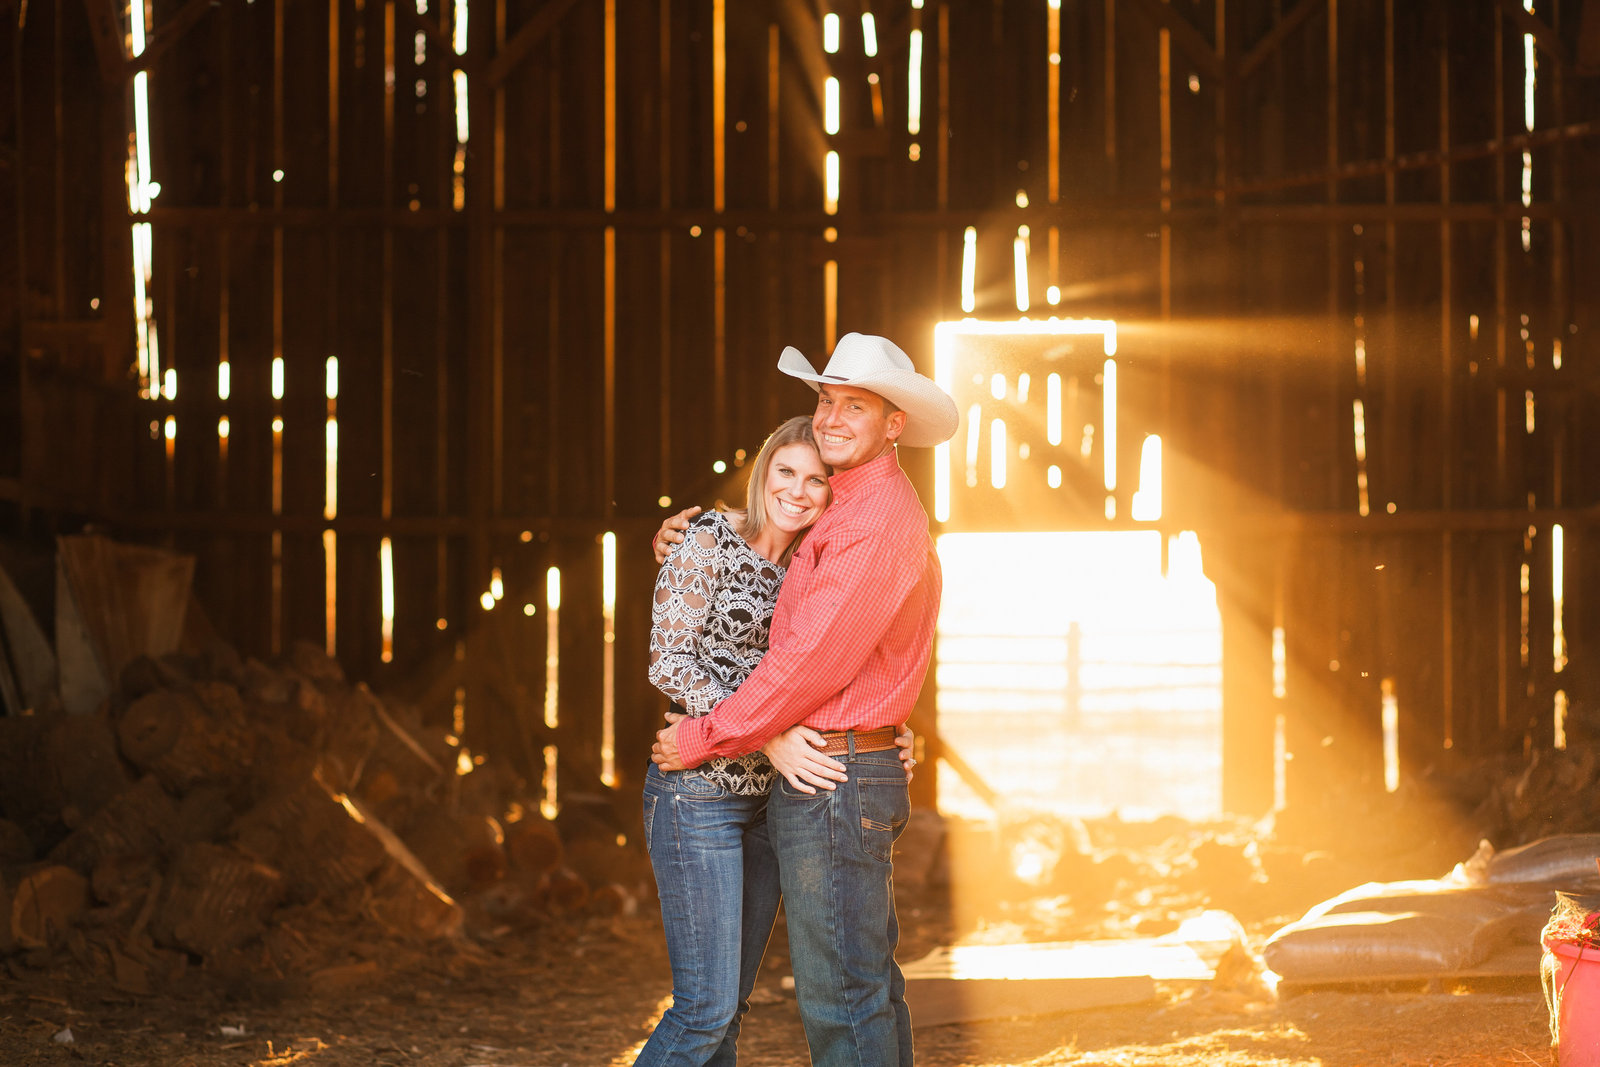 Lincoln engagement session couple in barn at sunset golden hour, country